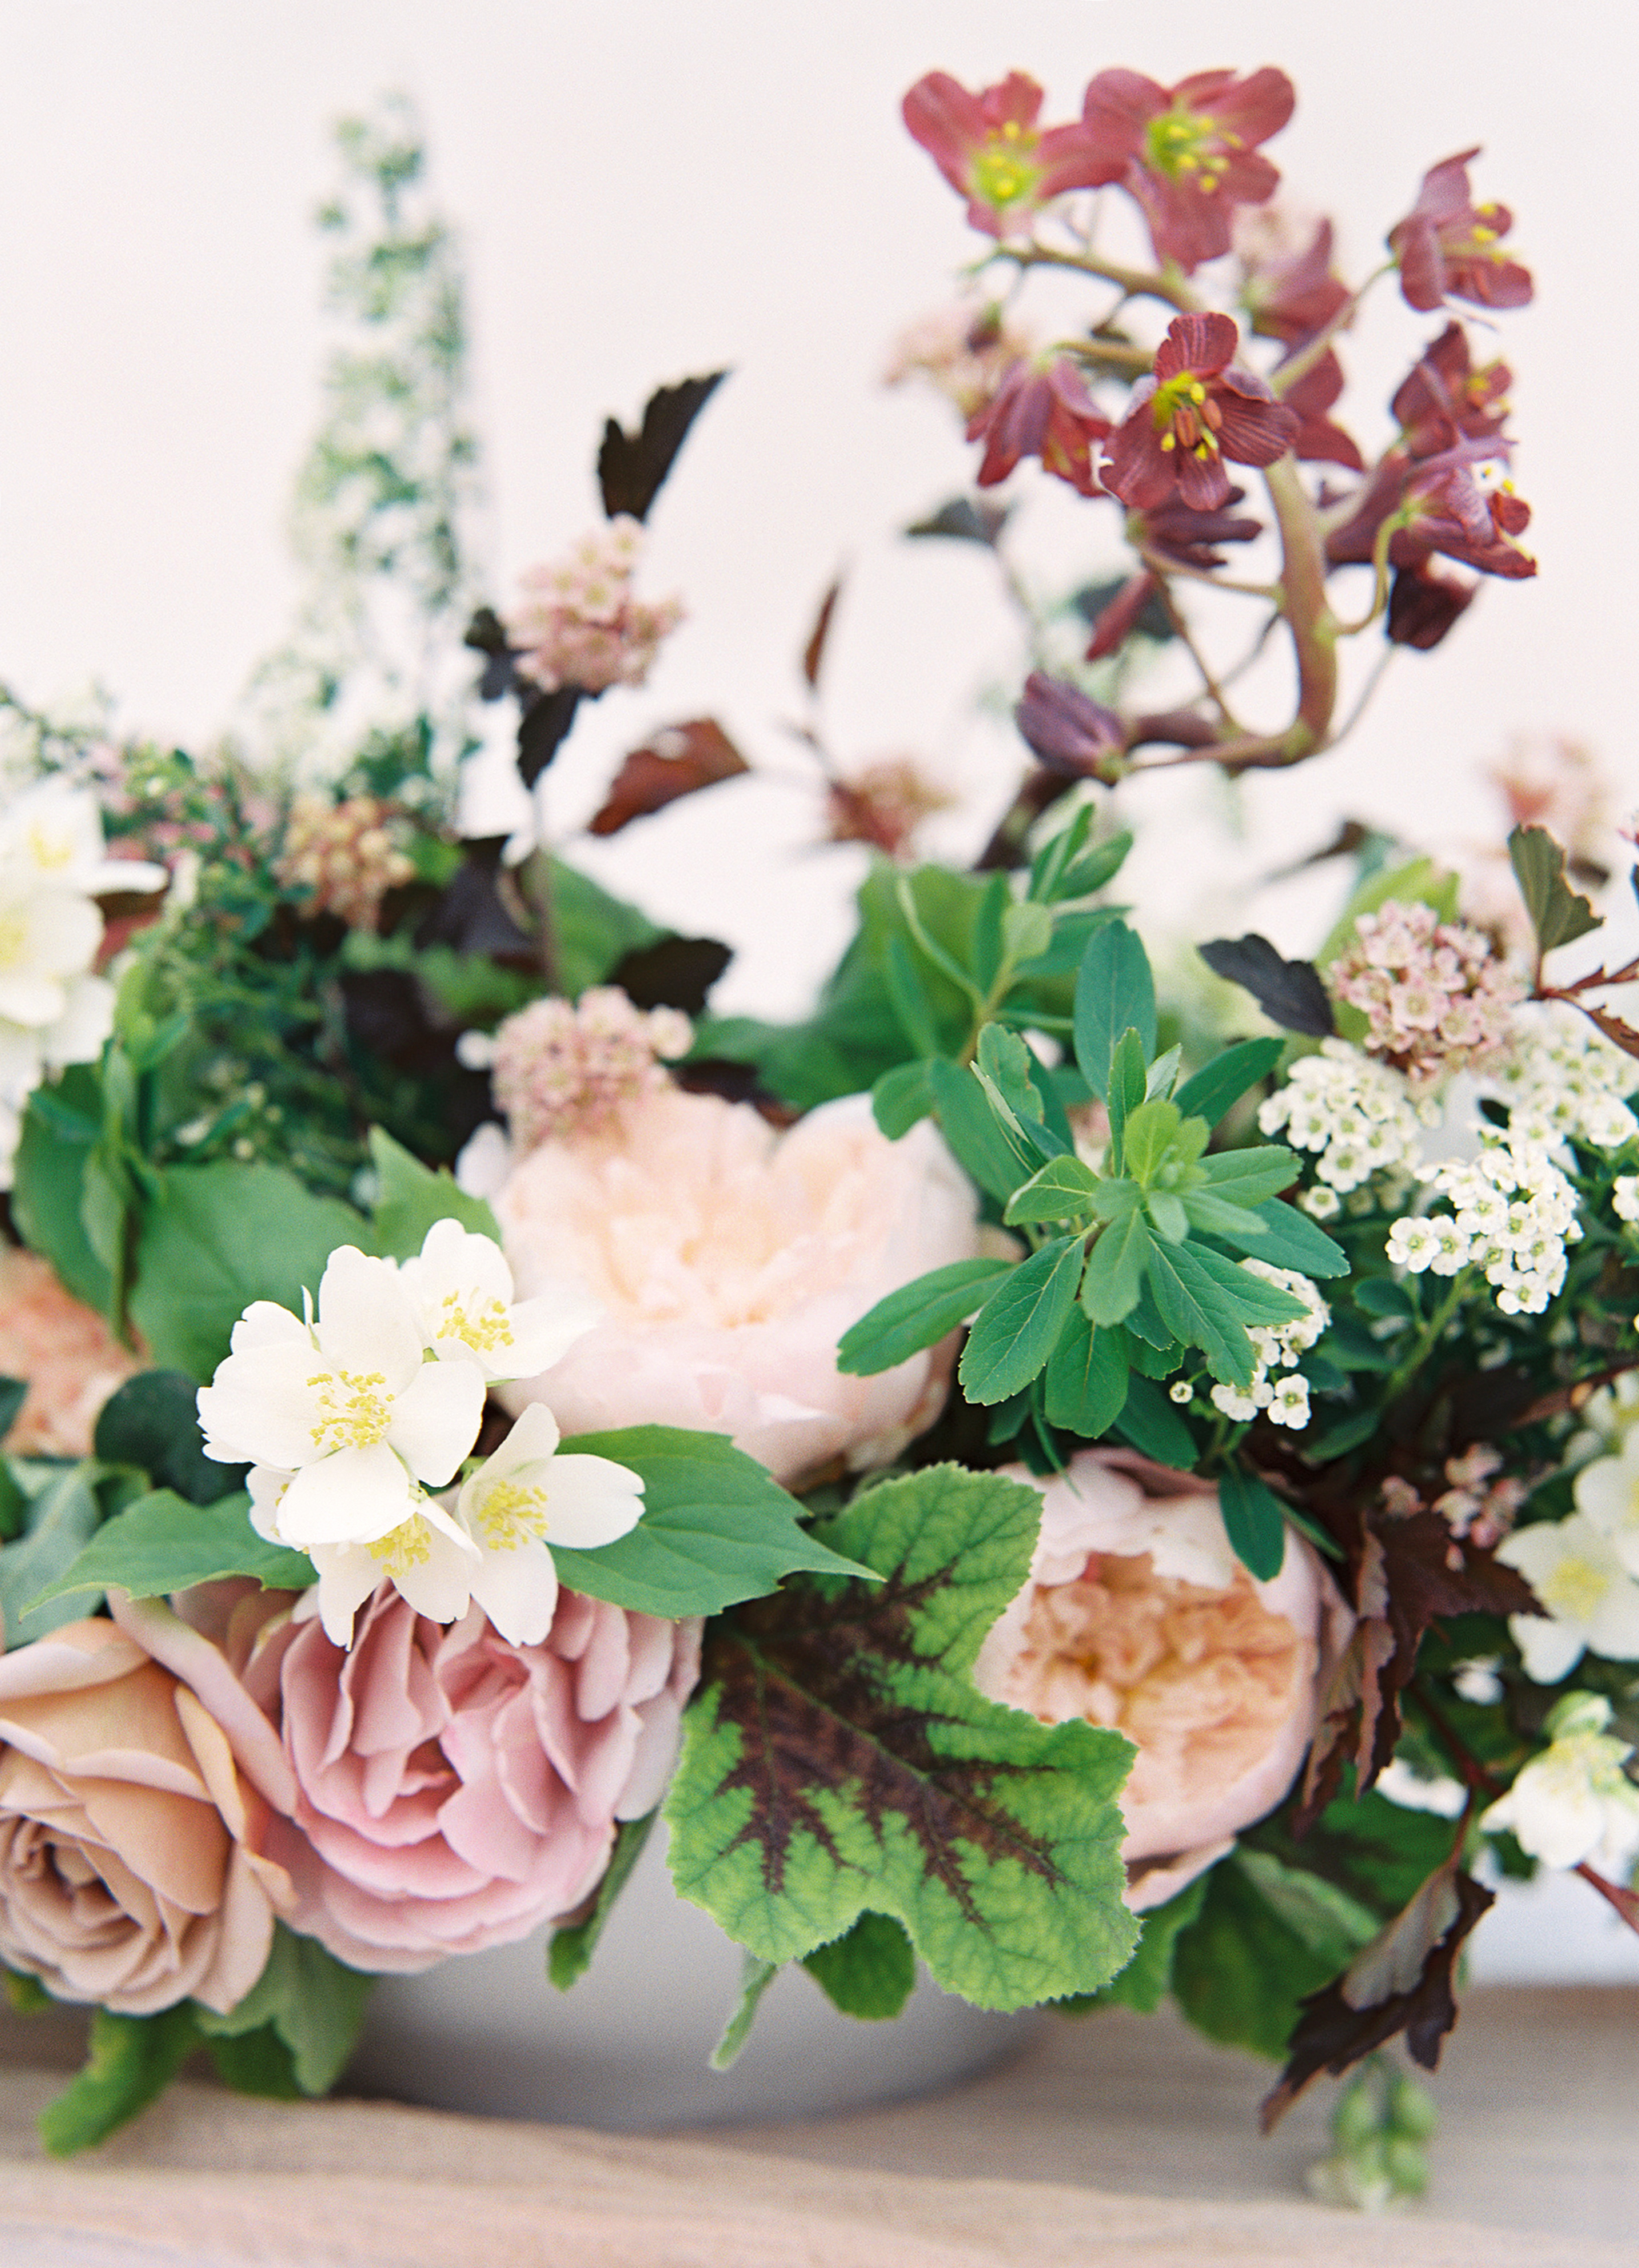 Photo by Christine Doneé Floral by Ellamah Modern Rustic Tablescape_10.jpg